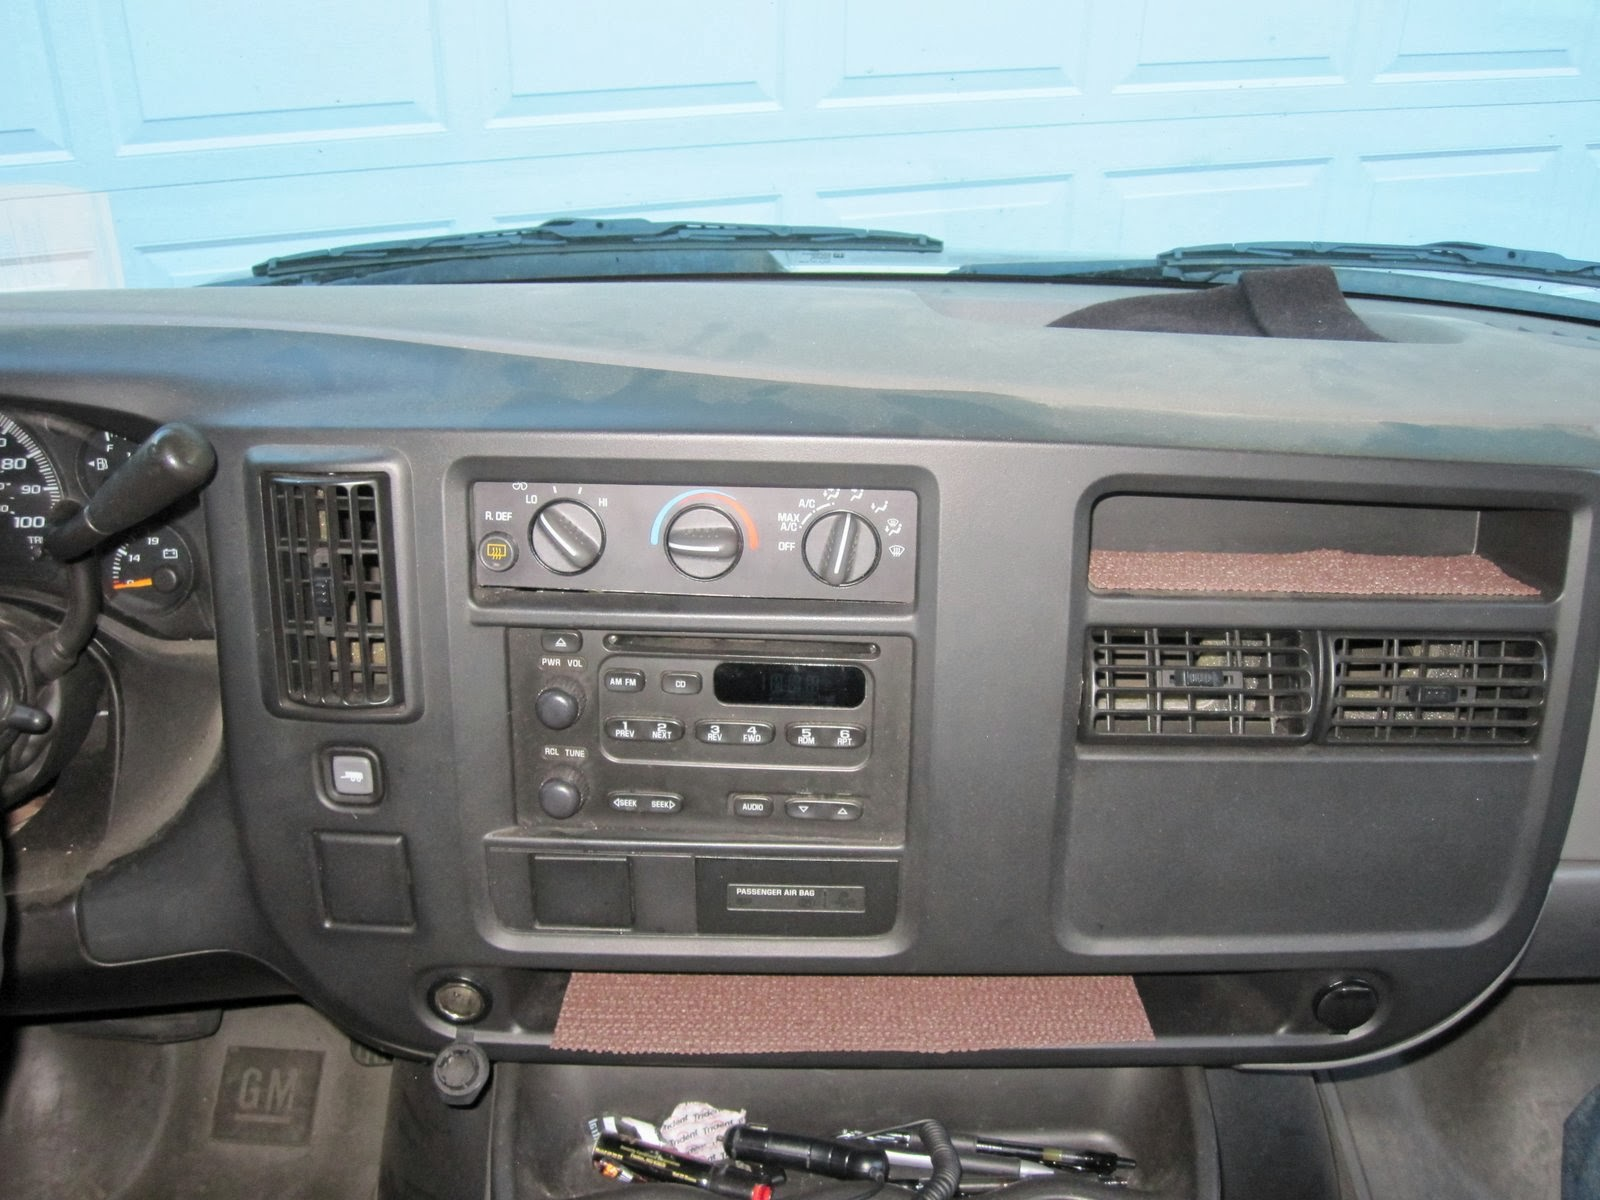 Replacing the Factory Radio | From a Chevy Express to a